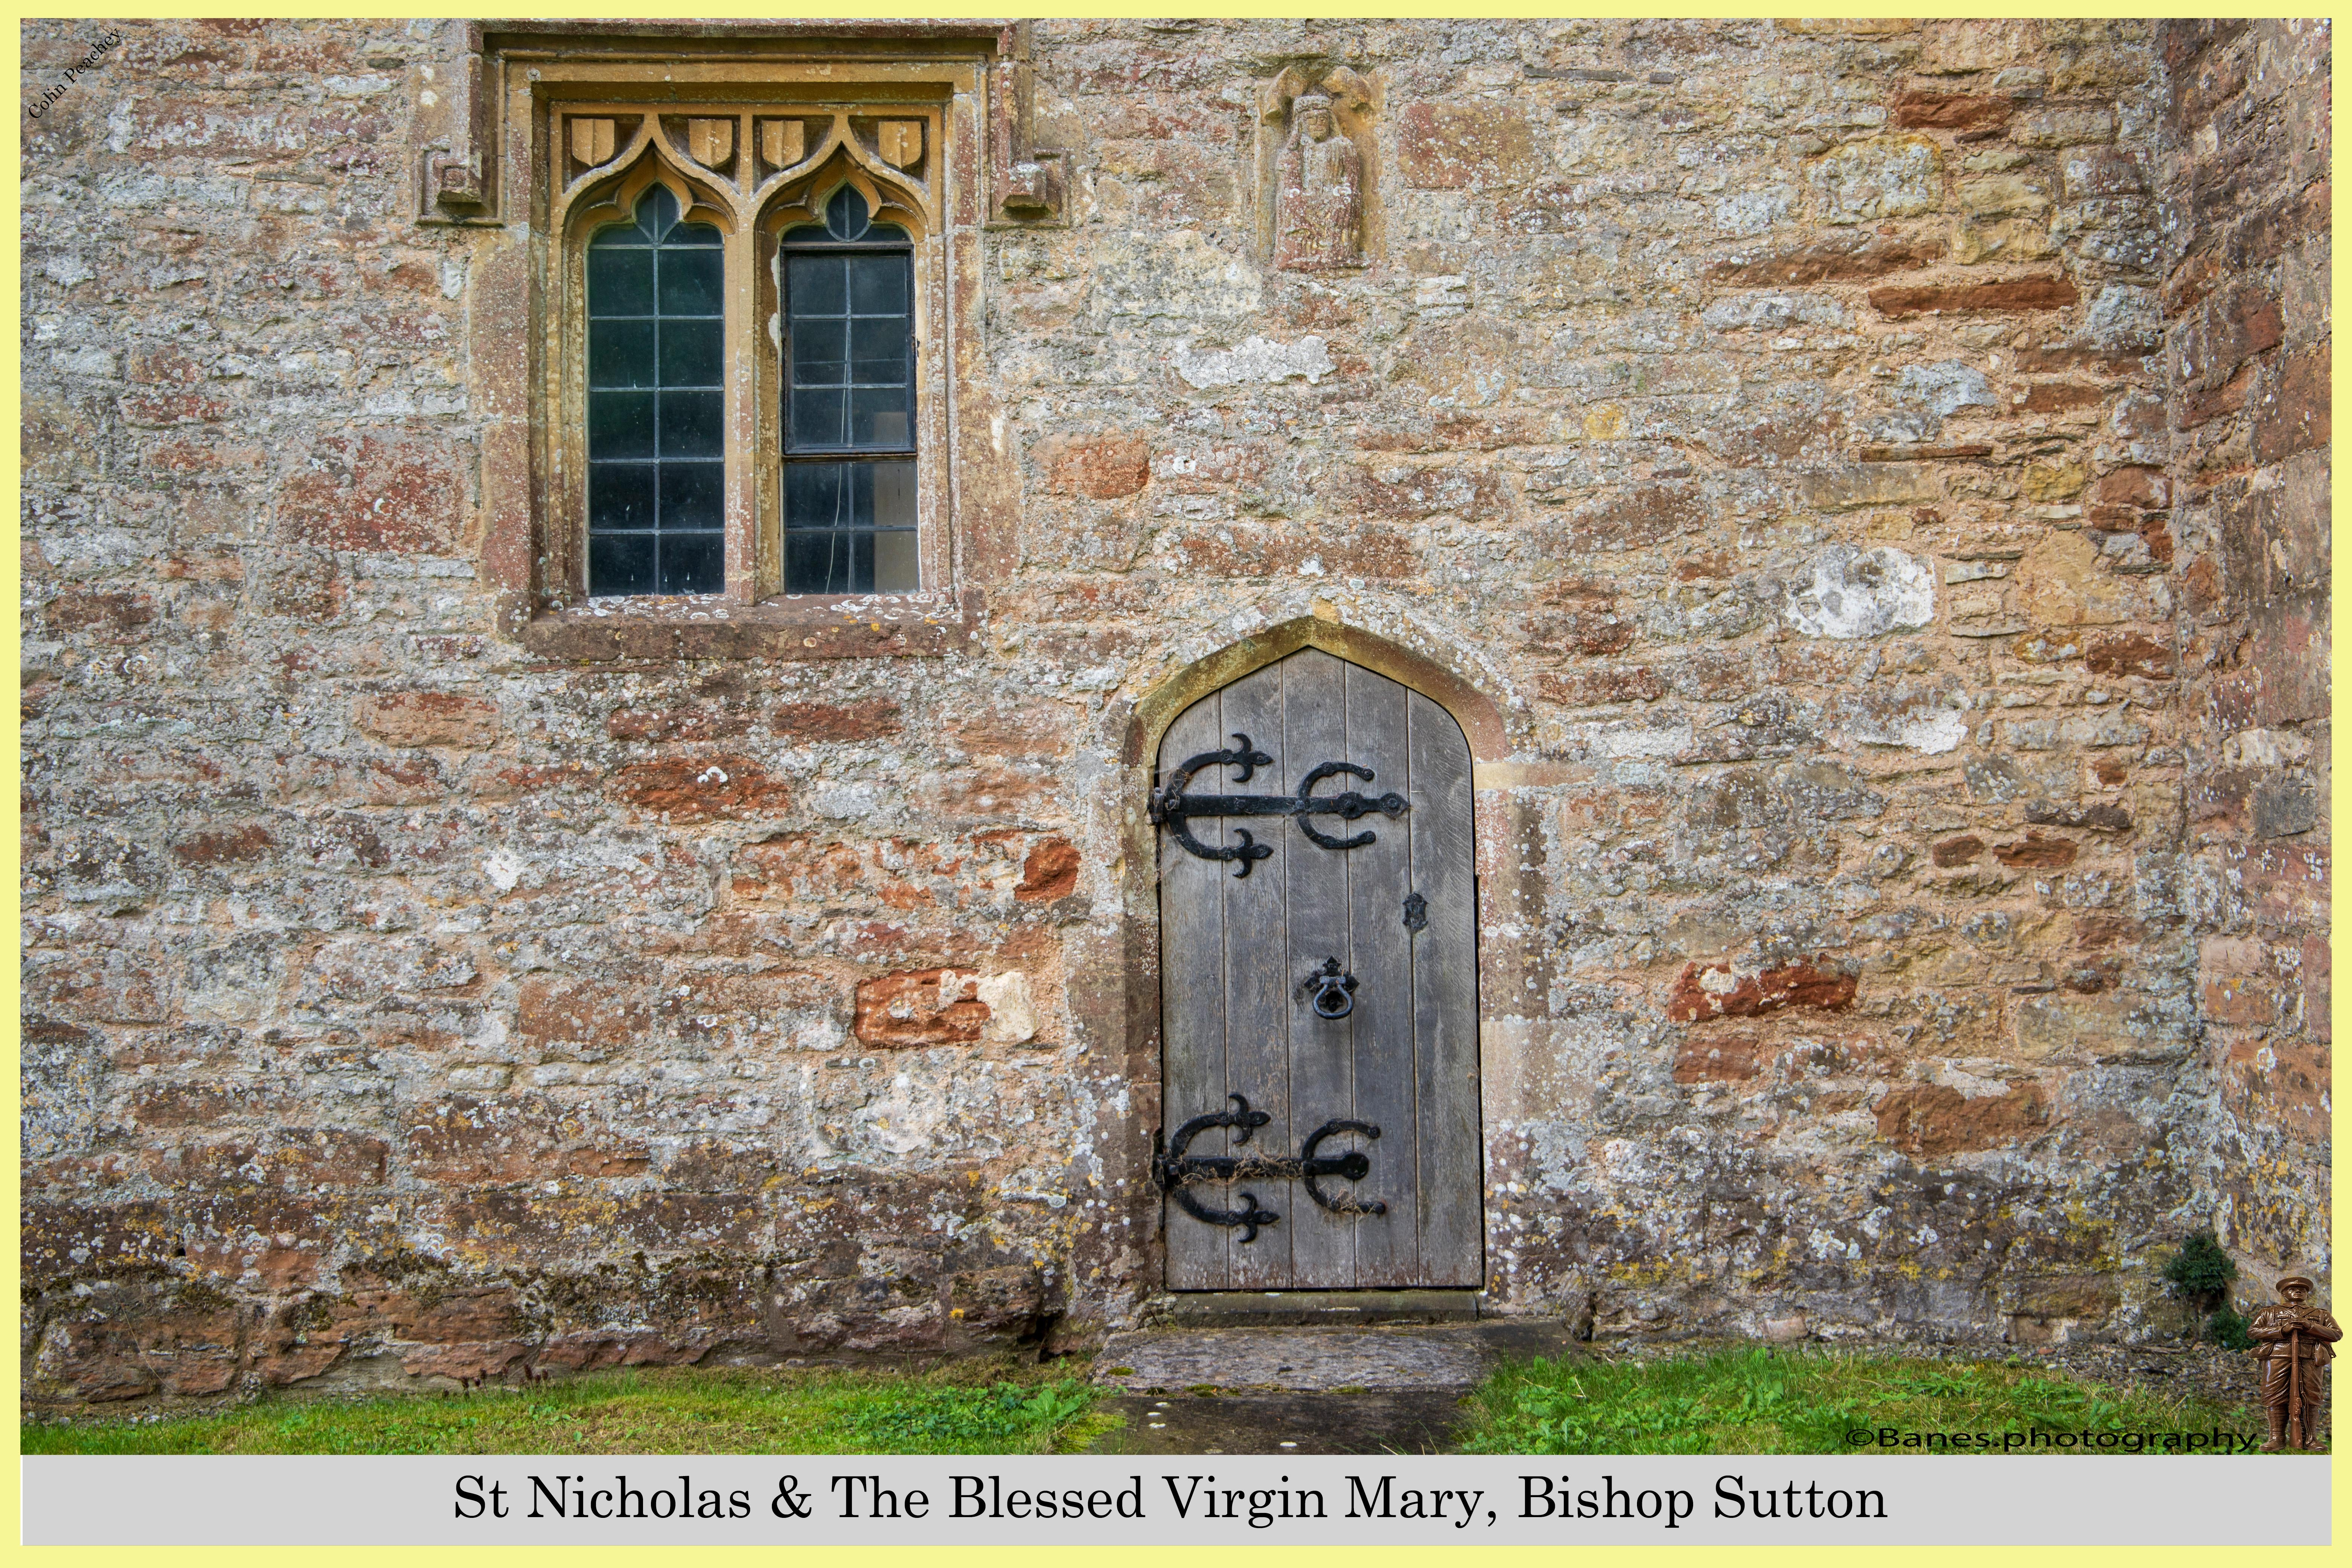 St Nicholas & The Blessed Virgin Mary, Bishop Sutton, UK